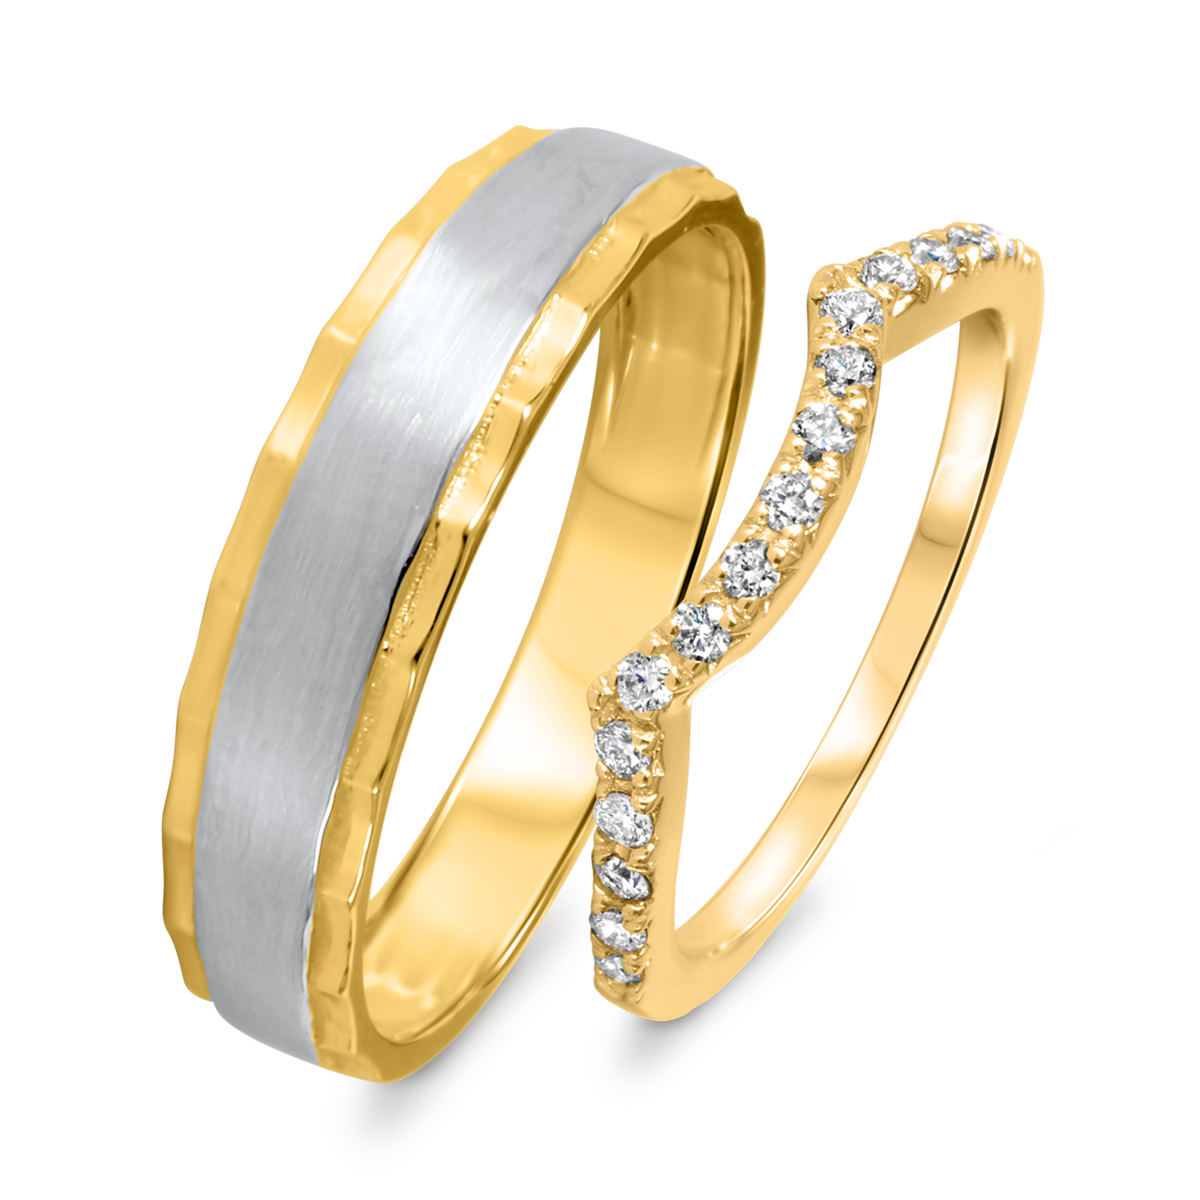 1/3 Carat T.W. Round Cut Diamond His And Hers Wedding Band Set 10K Yellow Gold-